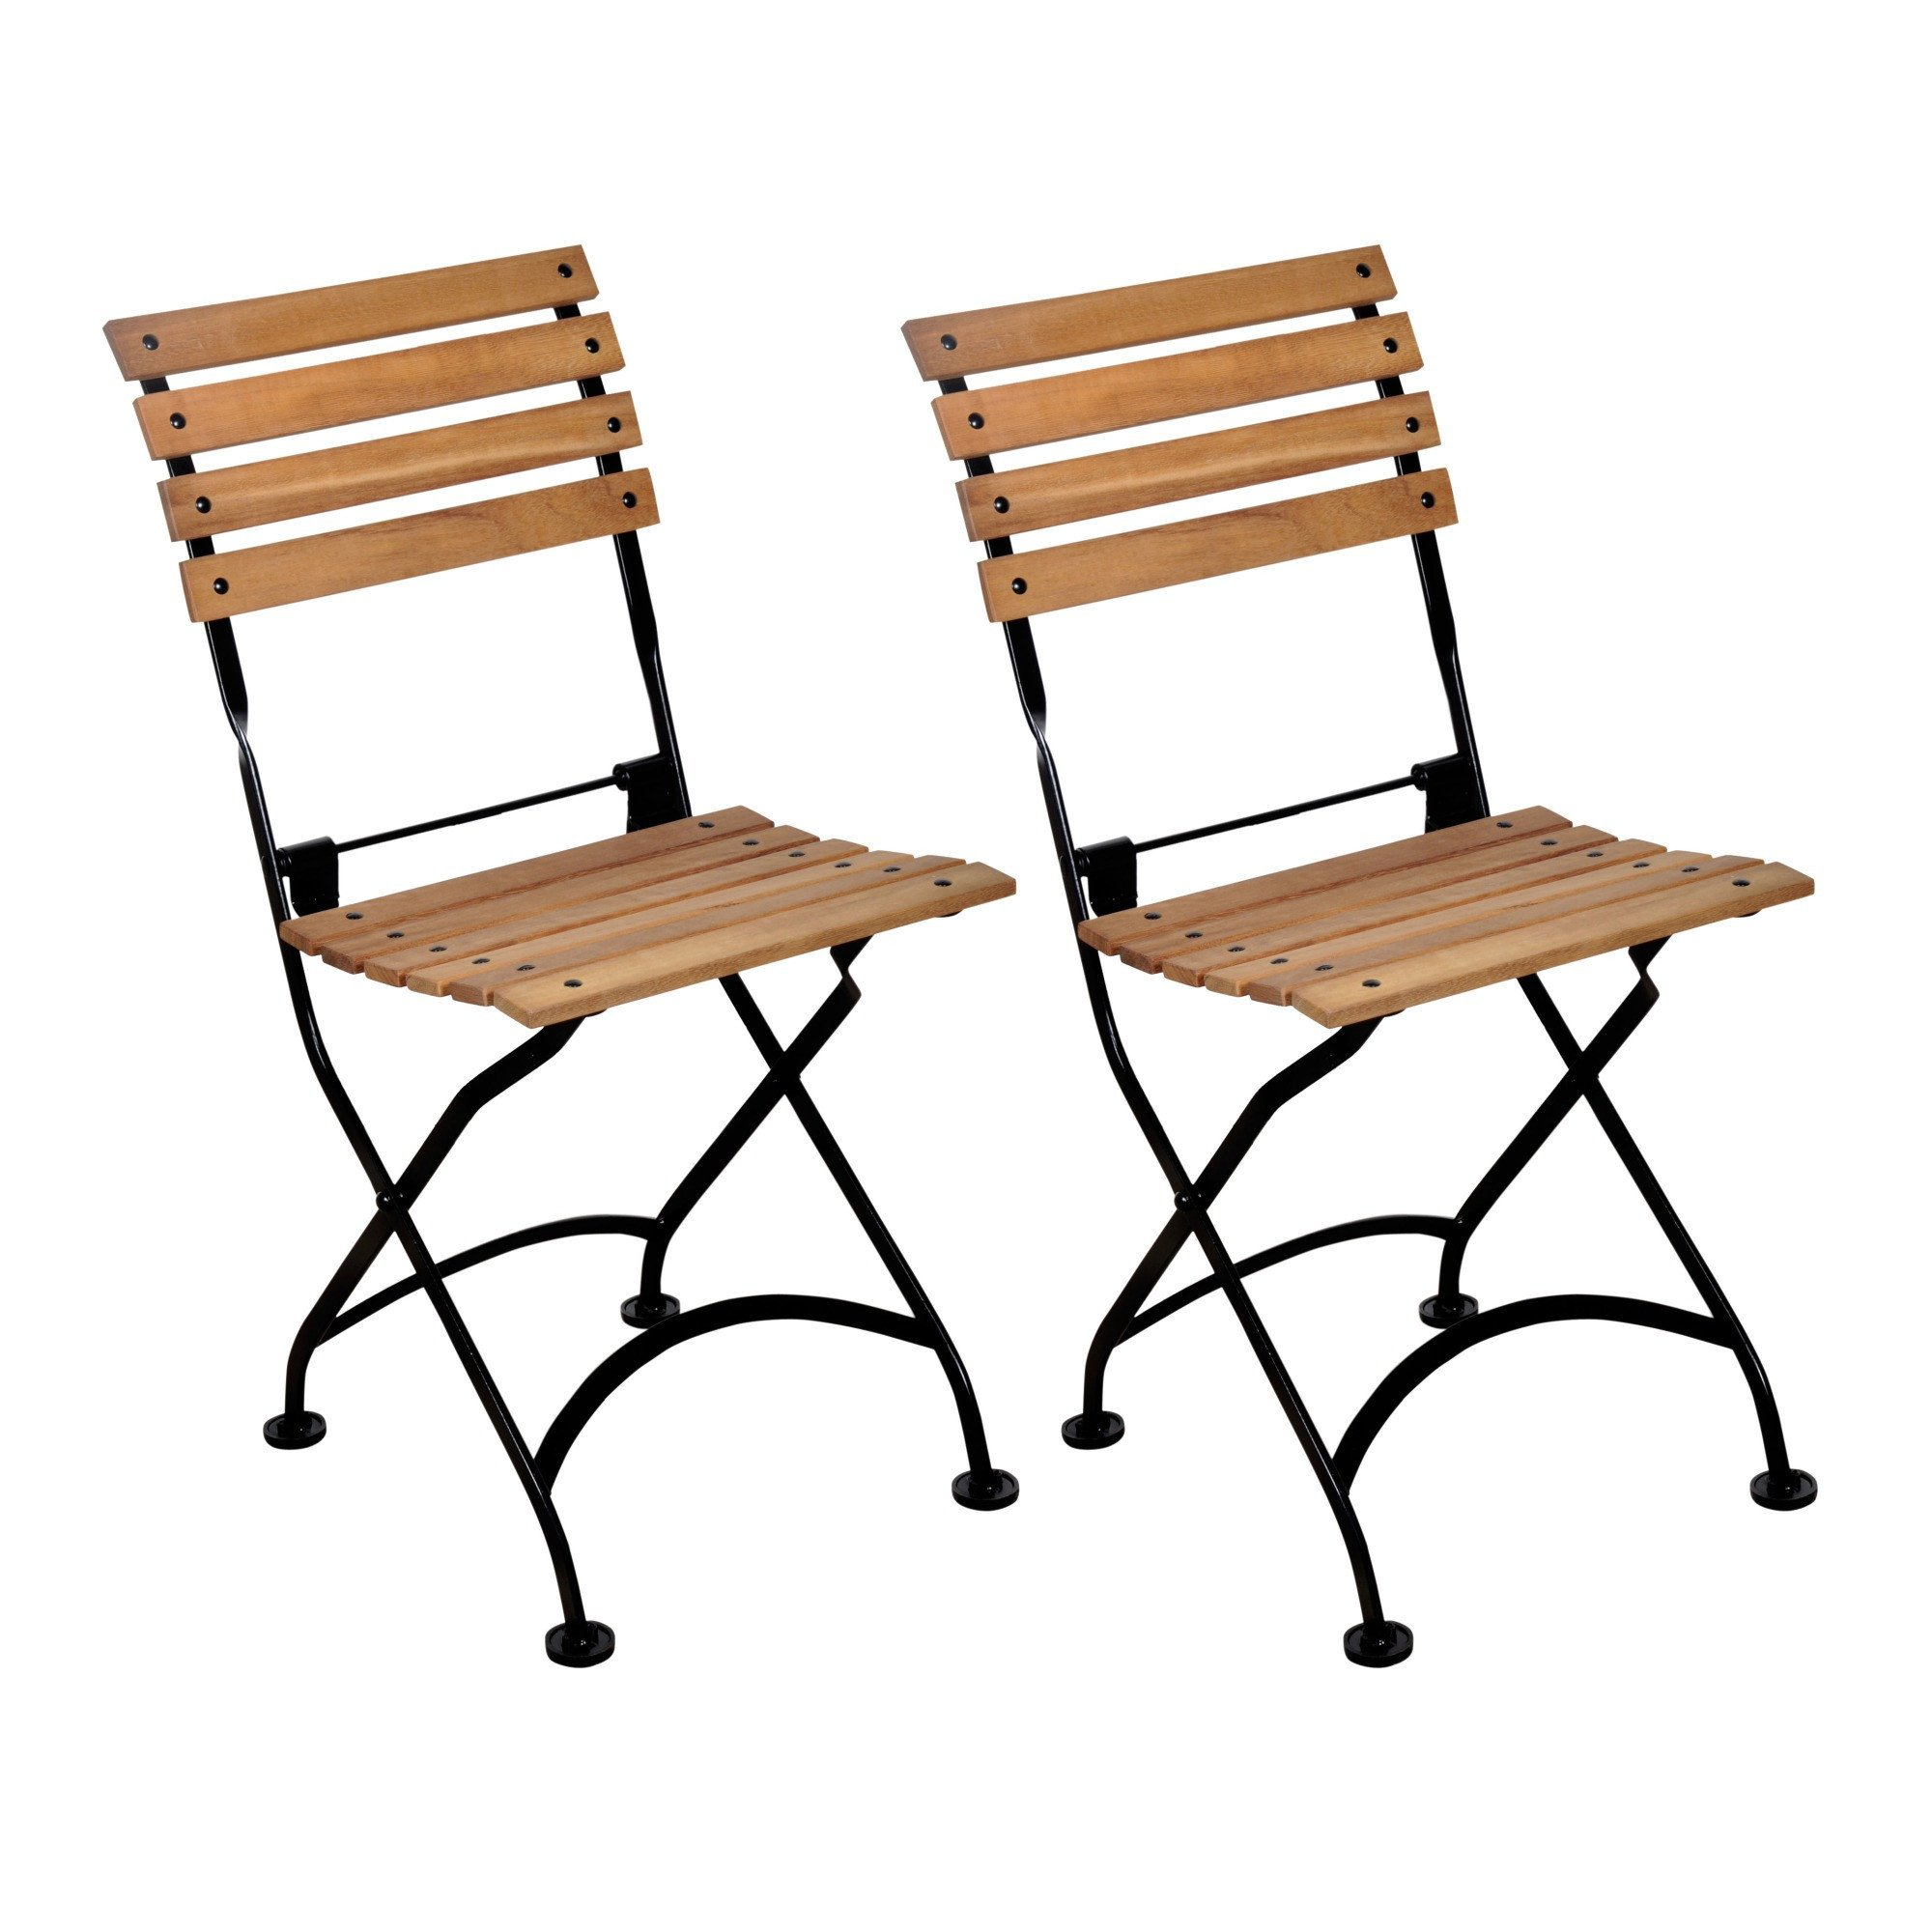 bistro chairs european folding wood bistro chair, set of 2 VYOBRQA